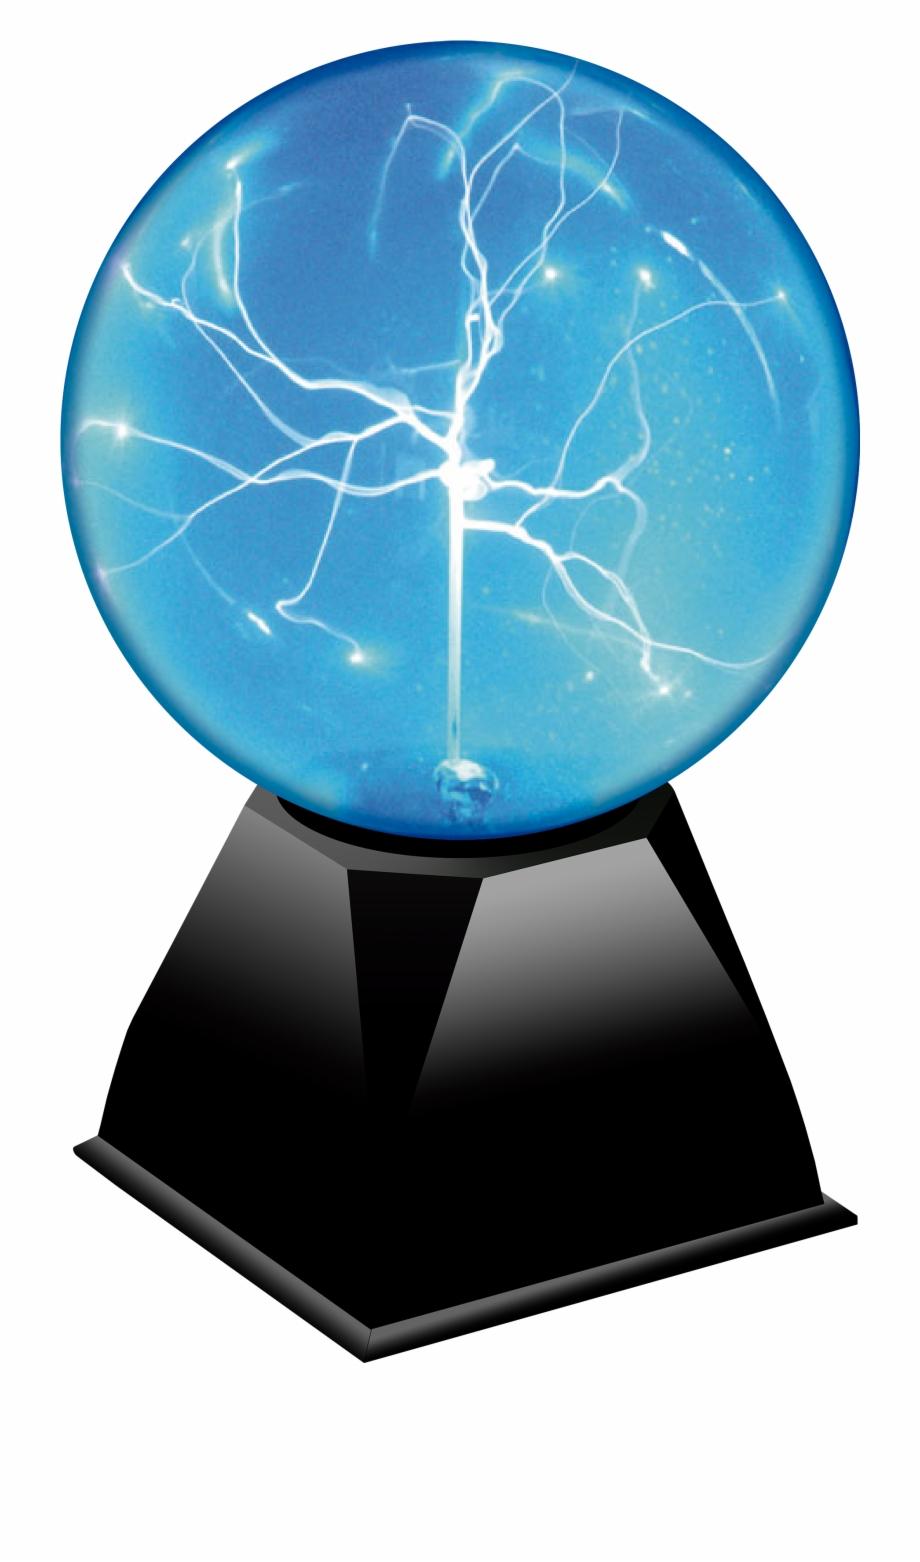 Plasma ball clipart graphic download Plasma Ball Blueray - Globe Free PNG Images & Clipart ... graphic download